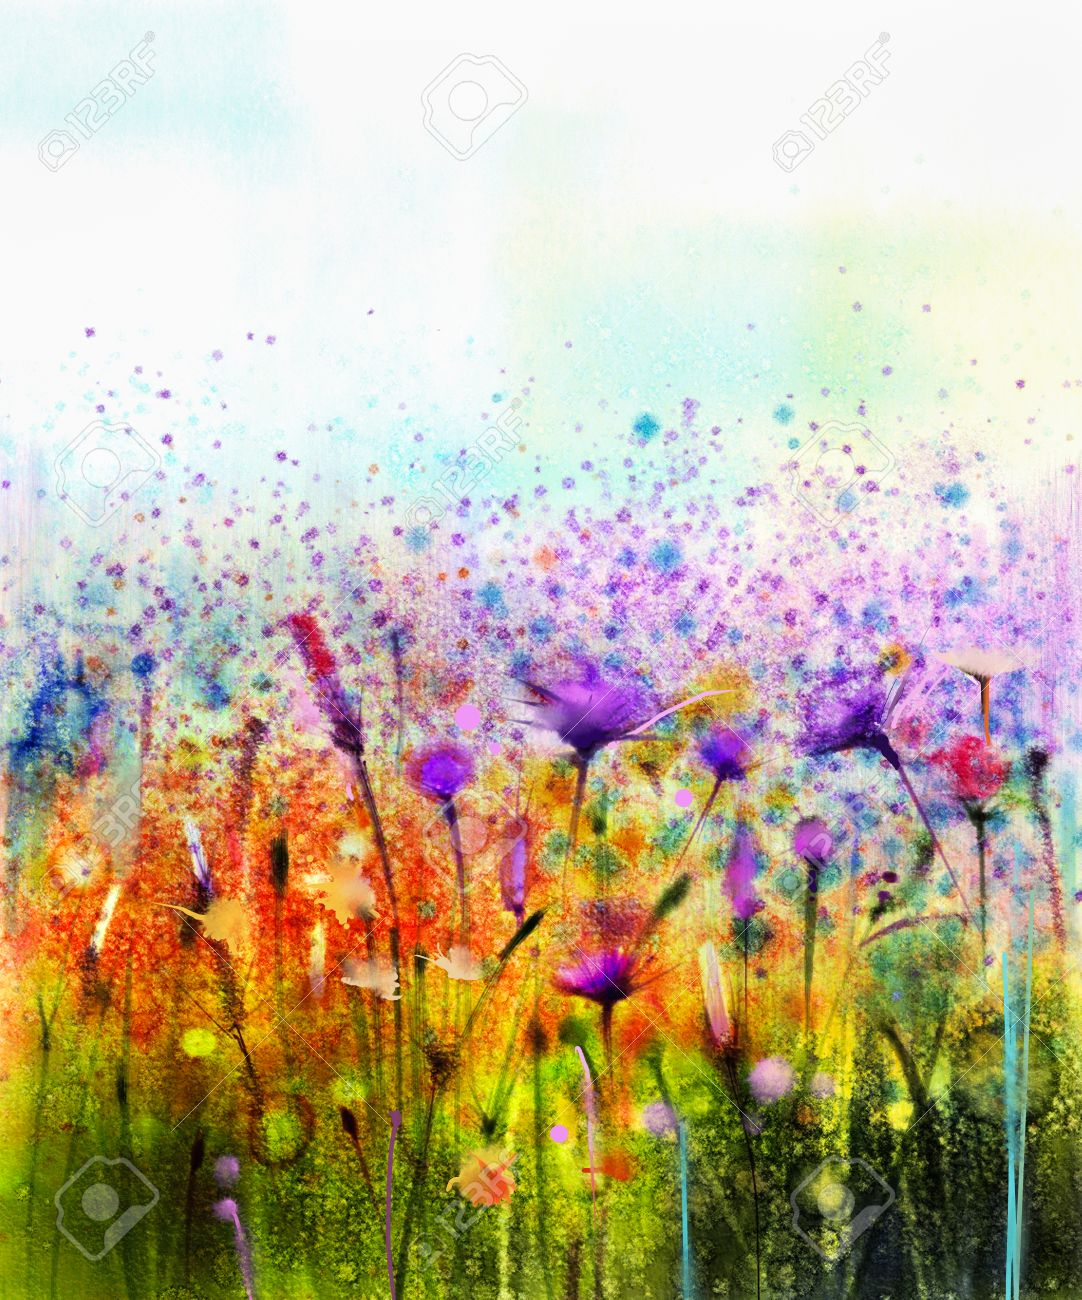 Abstract Watercolor Painting Purple Cosmos Flower Cornflower Stock Photo Picture And Royalty Free Image Image 59852139